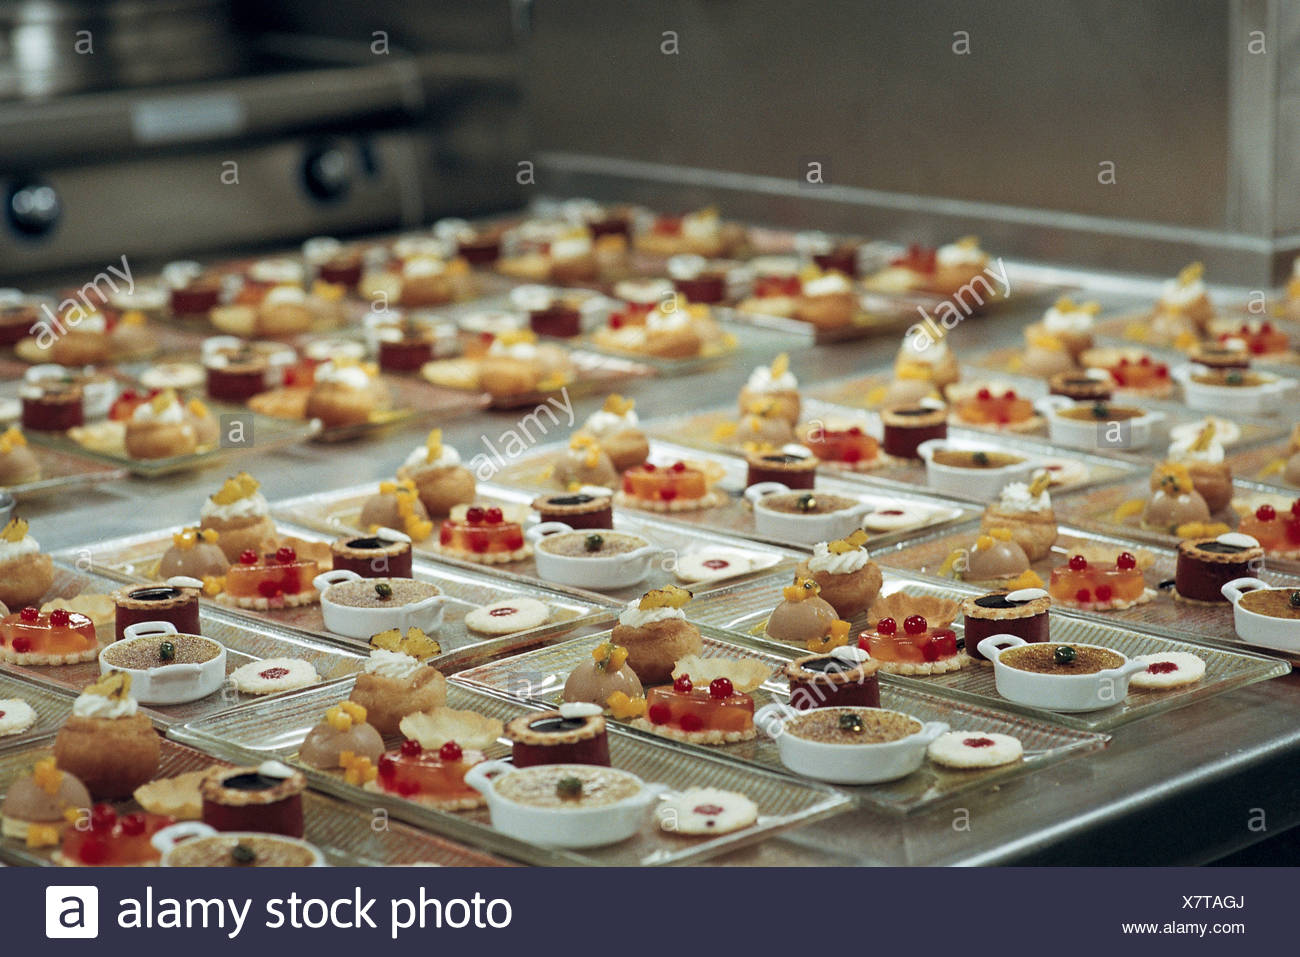 Food Prepared in Commercial Kitchen - Stock Image